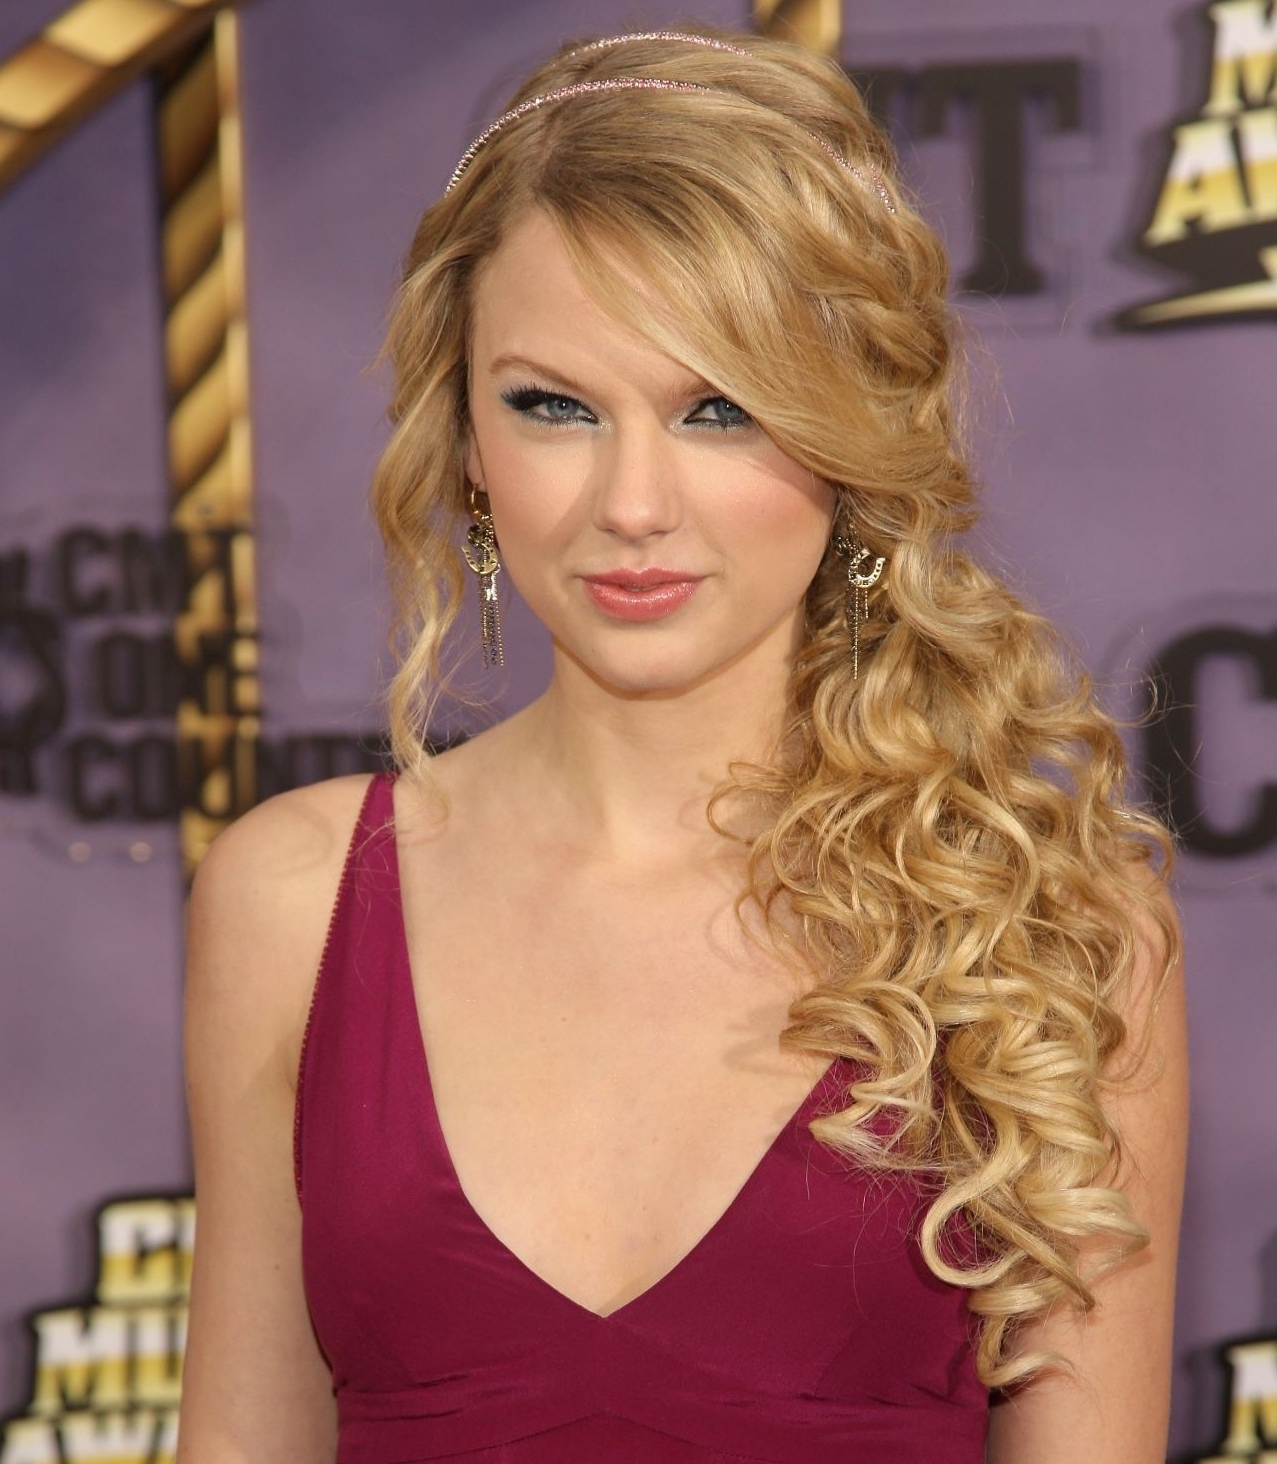 Most Current Side Braid Hairstyles For Curly Ponytail Intended For Long Curly Hair Bridal Hairstyles Curly Side Ponytail Prom Hairstyles (View 15 of 20)